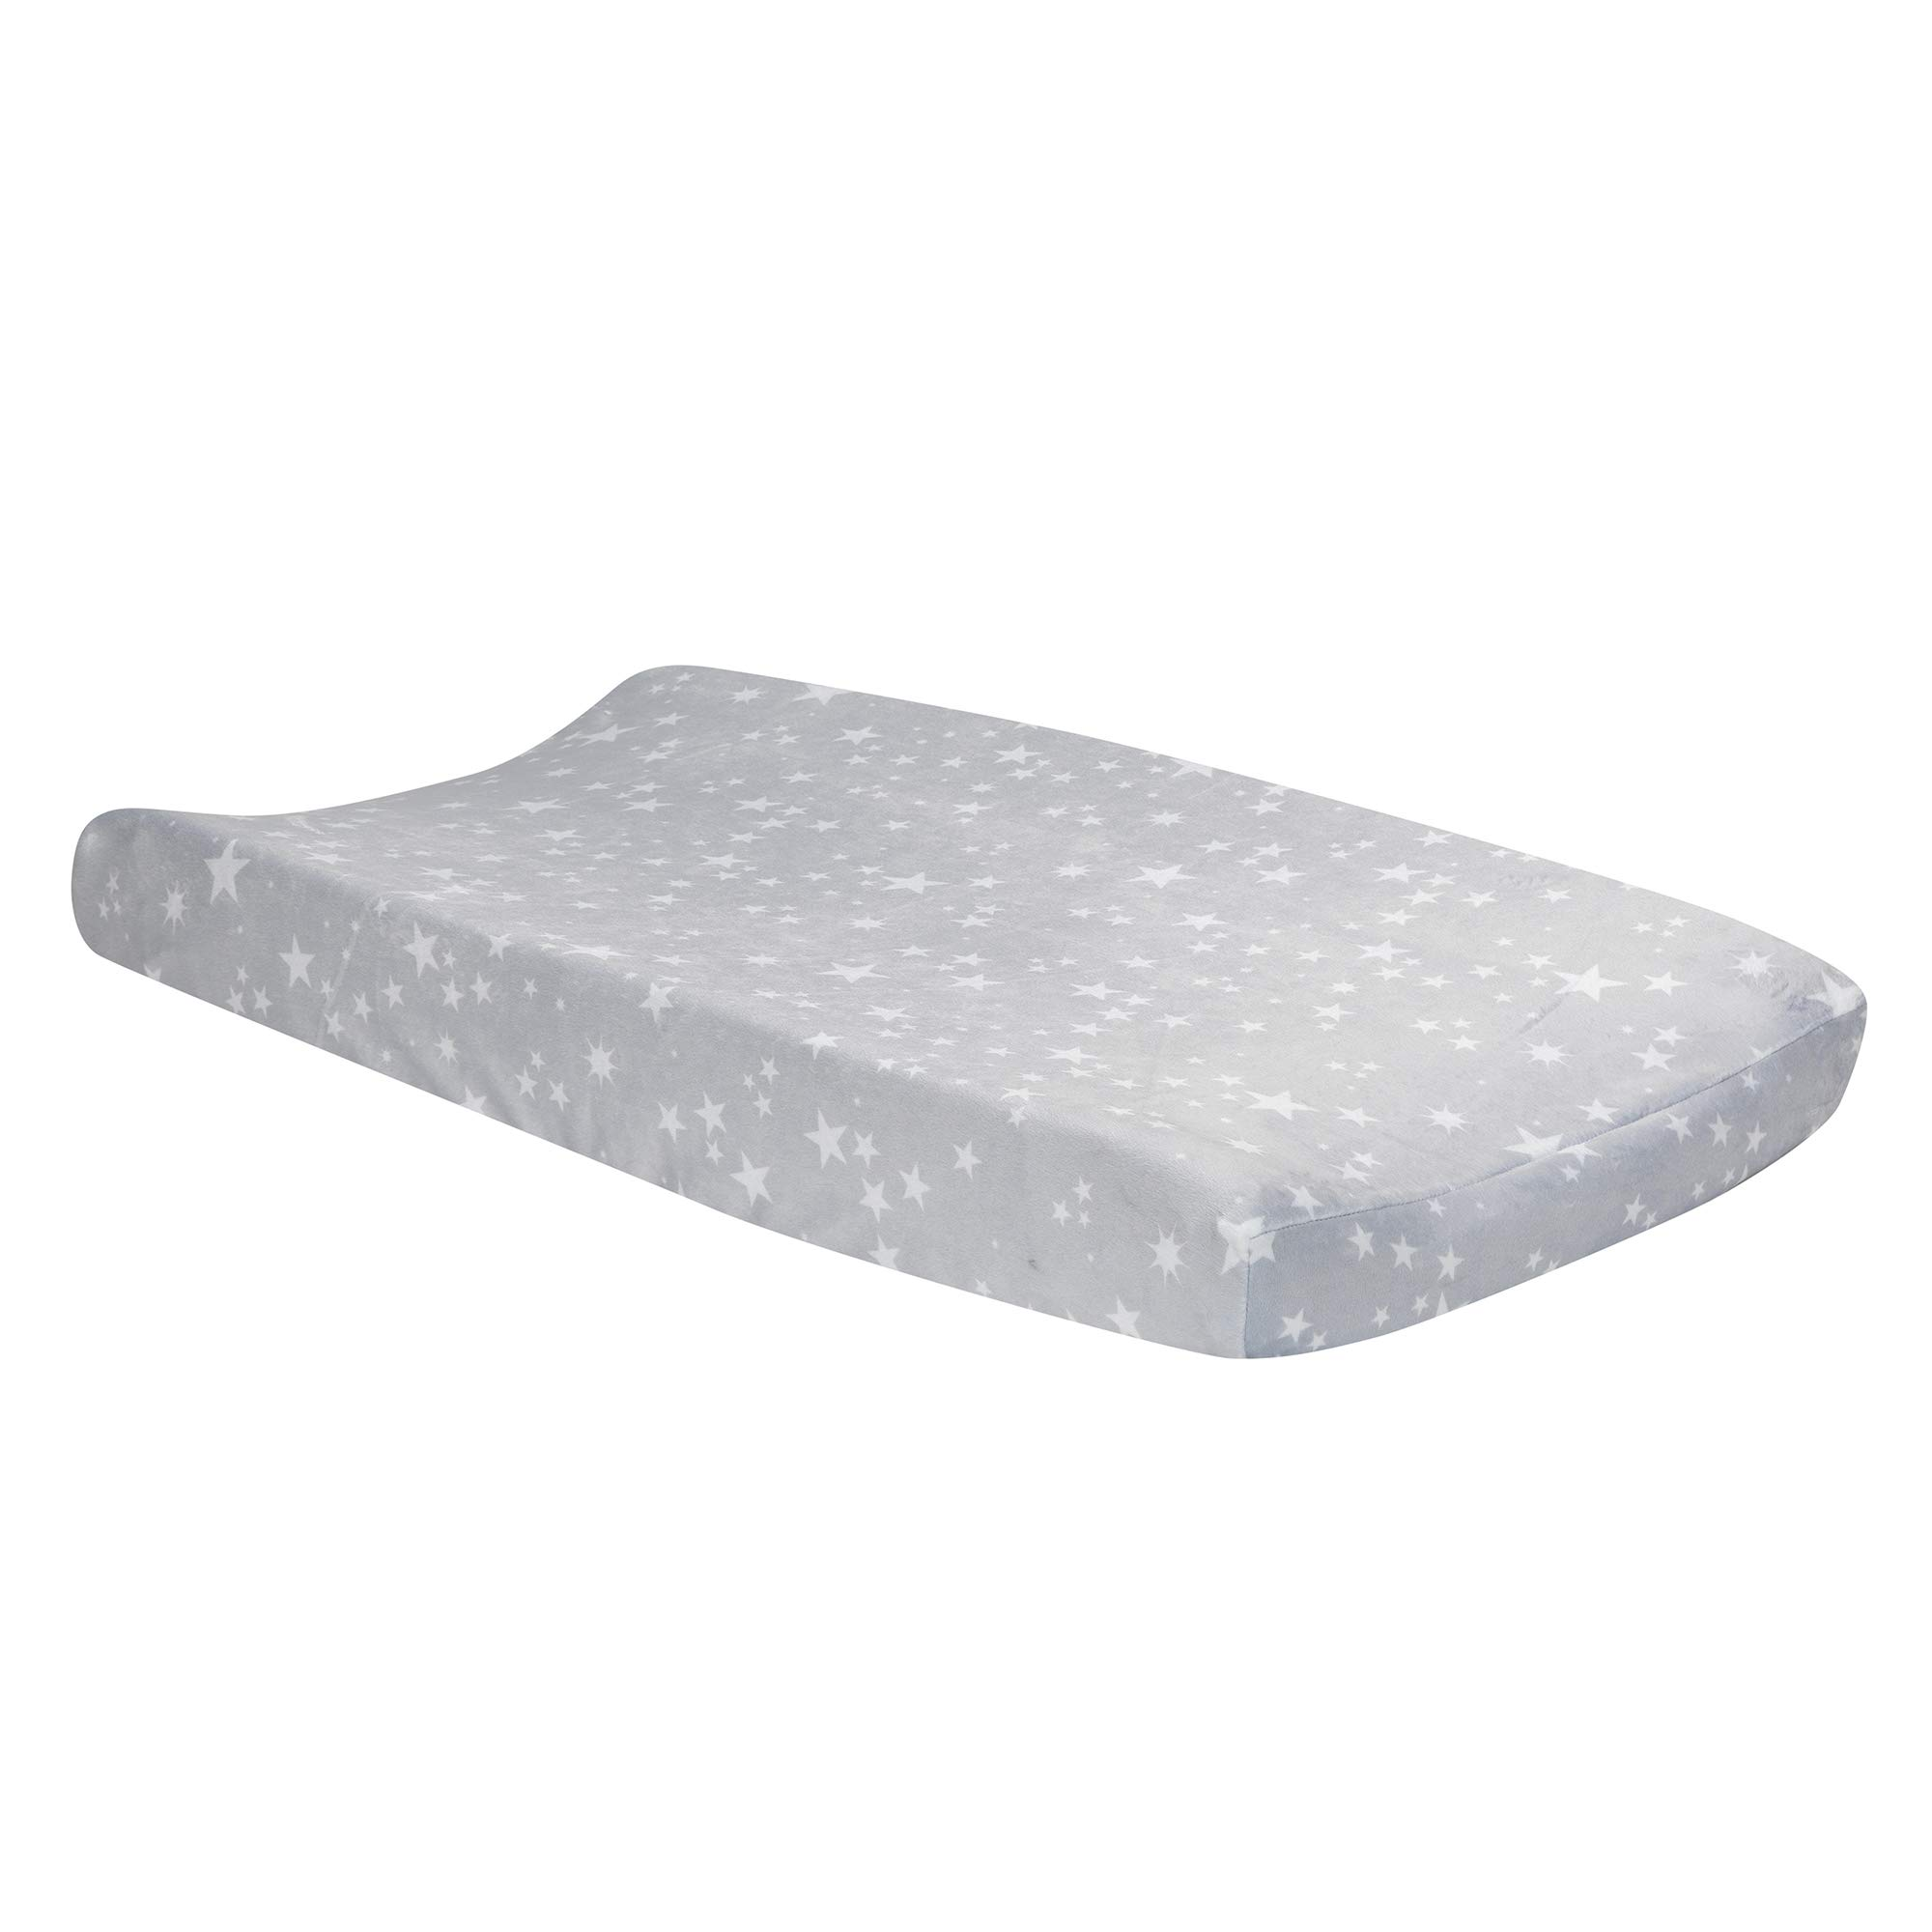 Lambs & Ivy Milky Way Gray/White Stars Minky Baby Changing Pad Cover by Lambs & Ivy